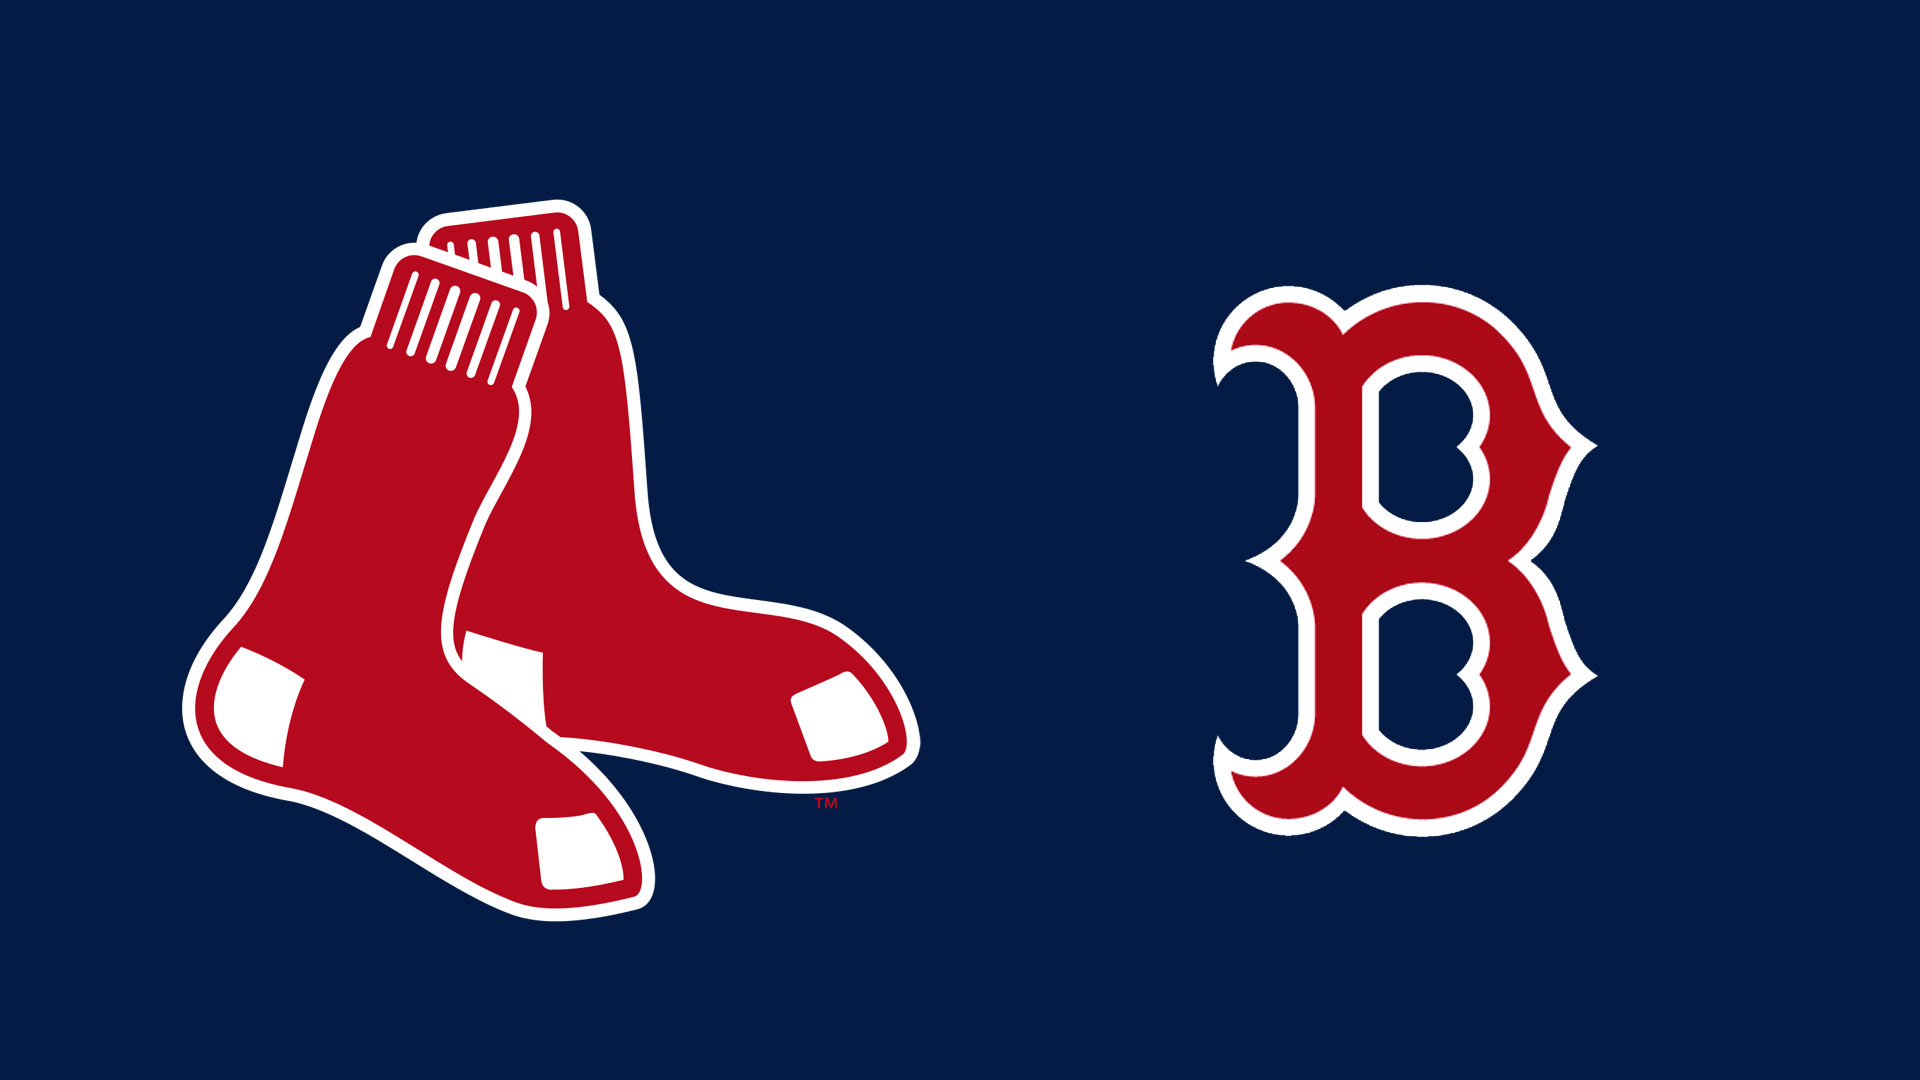 red sox The red sox are having one of the best seasons in franchise history, but the  bullpen has been a jekyll and hyde affair can ryan brasier and co prove their .